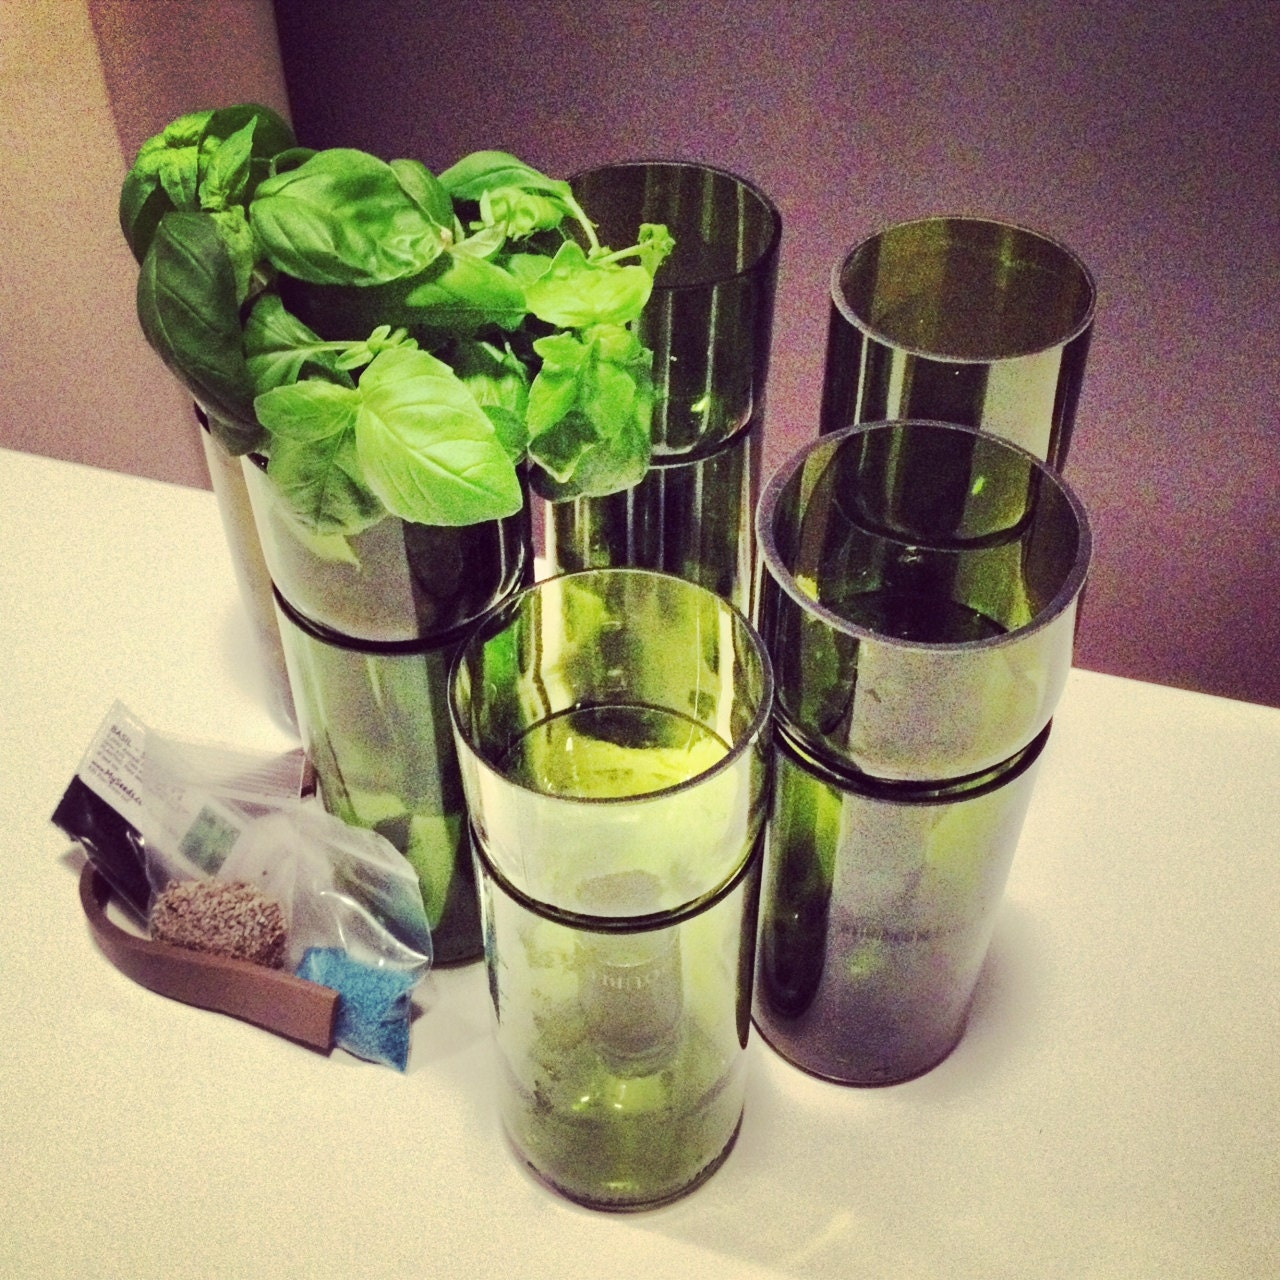 Recycled wine bottle glasses - Recycled Self Watering Wine Bottle Planter Complete Kit Grow Basil Or Parsley